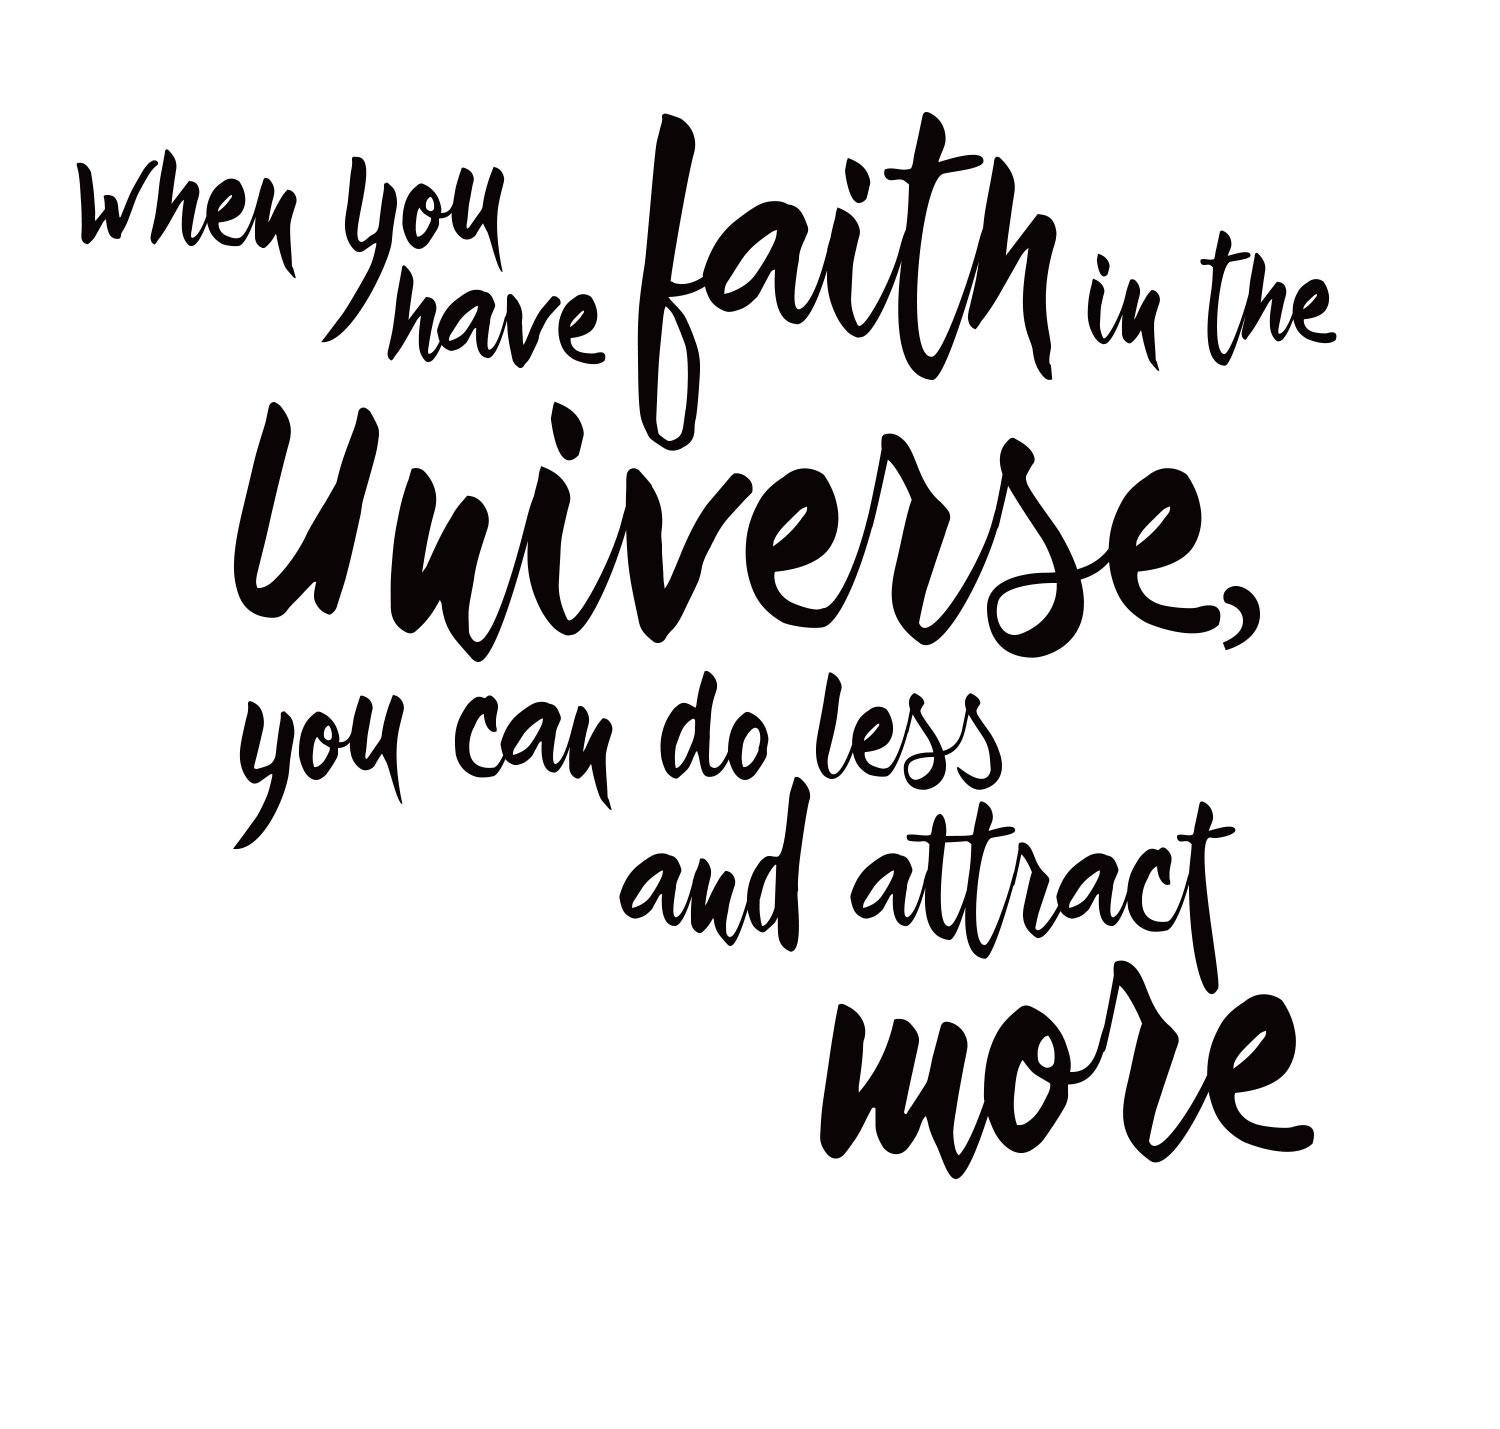 faith in the universe attract more|have fun achieving goals